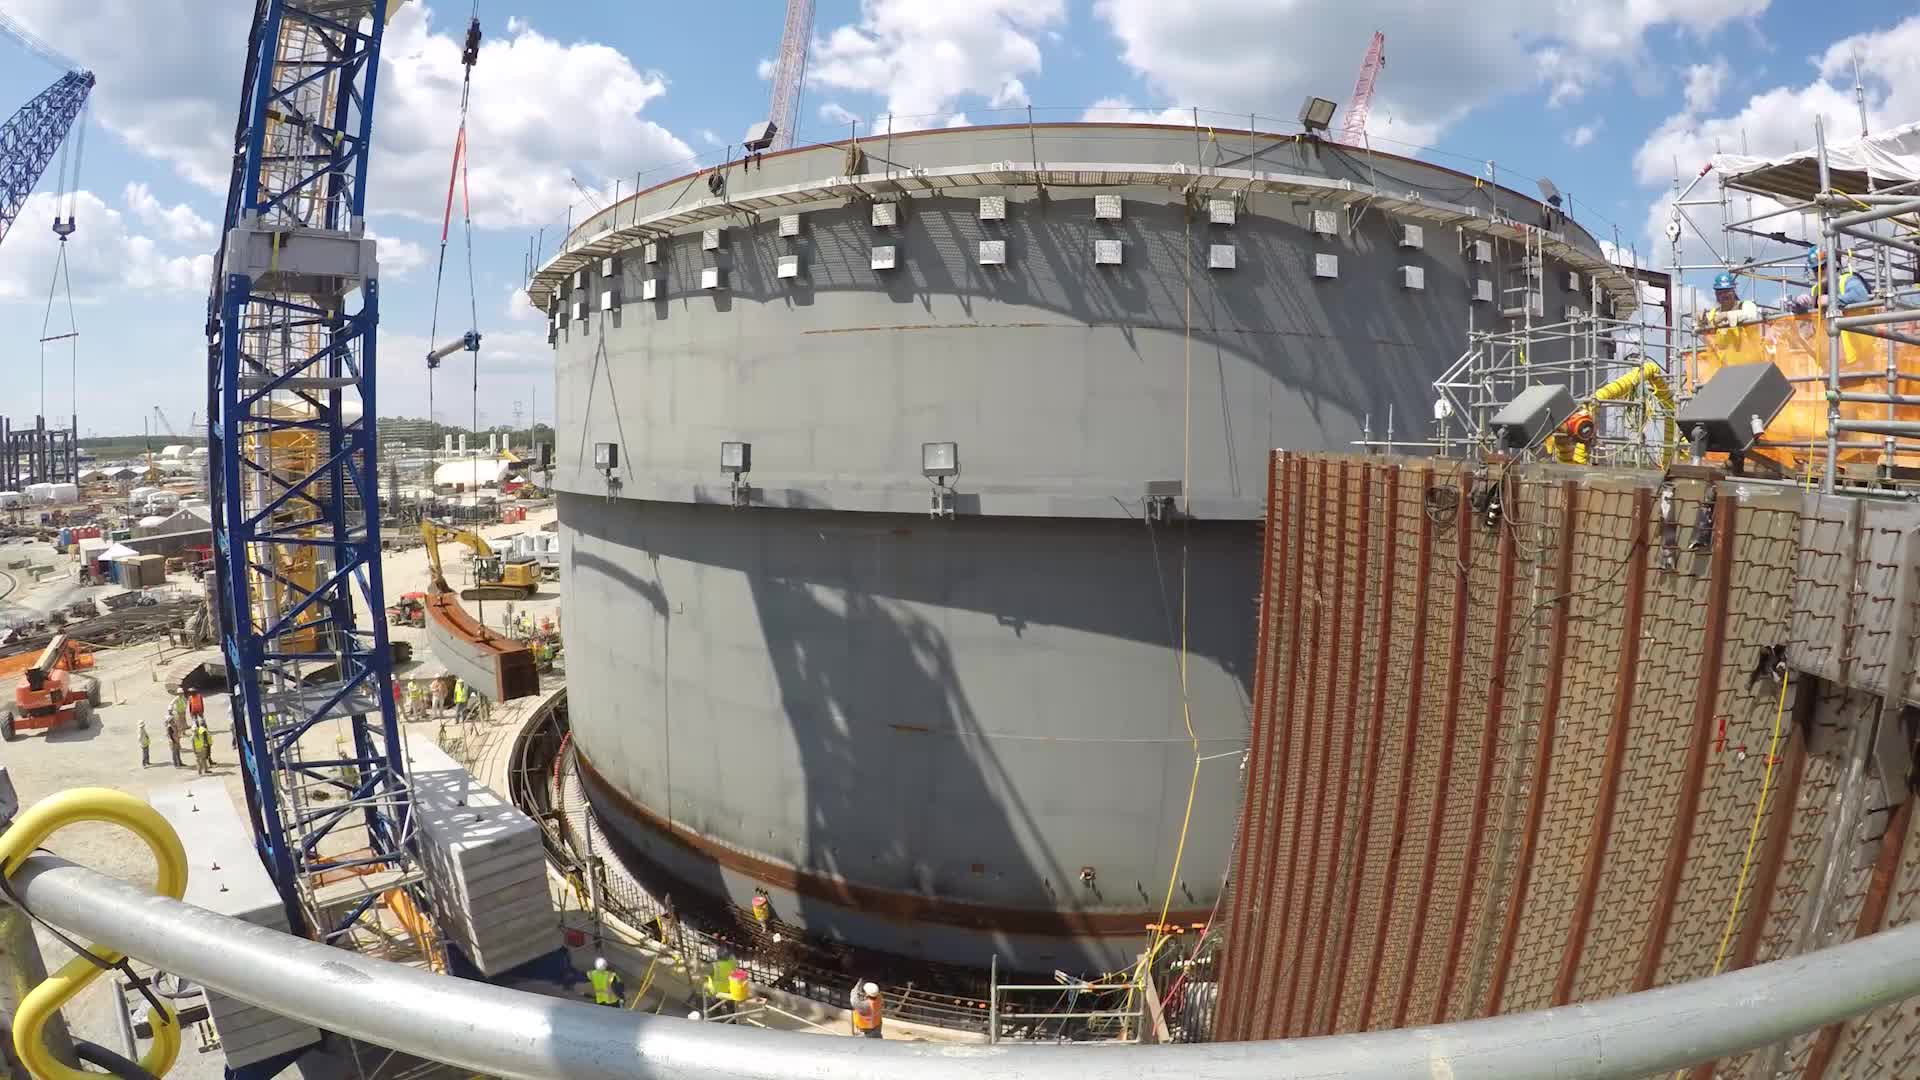 Time-lapse video of the safe placement of the first shield building panel for Unit 3. Once completely assembled, the shield building will provide structural support of the containment cooling water supply and protect the containment vessel, which houses the reactor vessel and associated equipment.